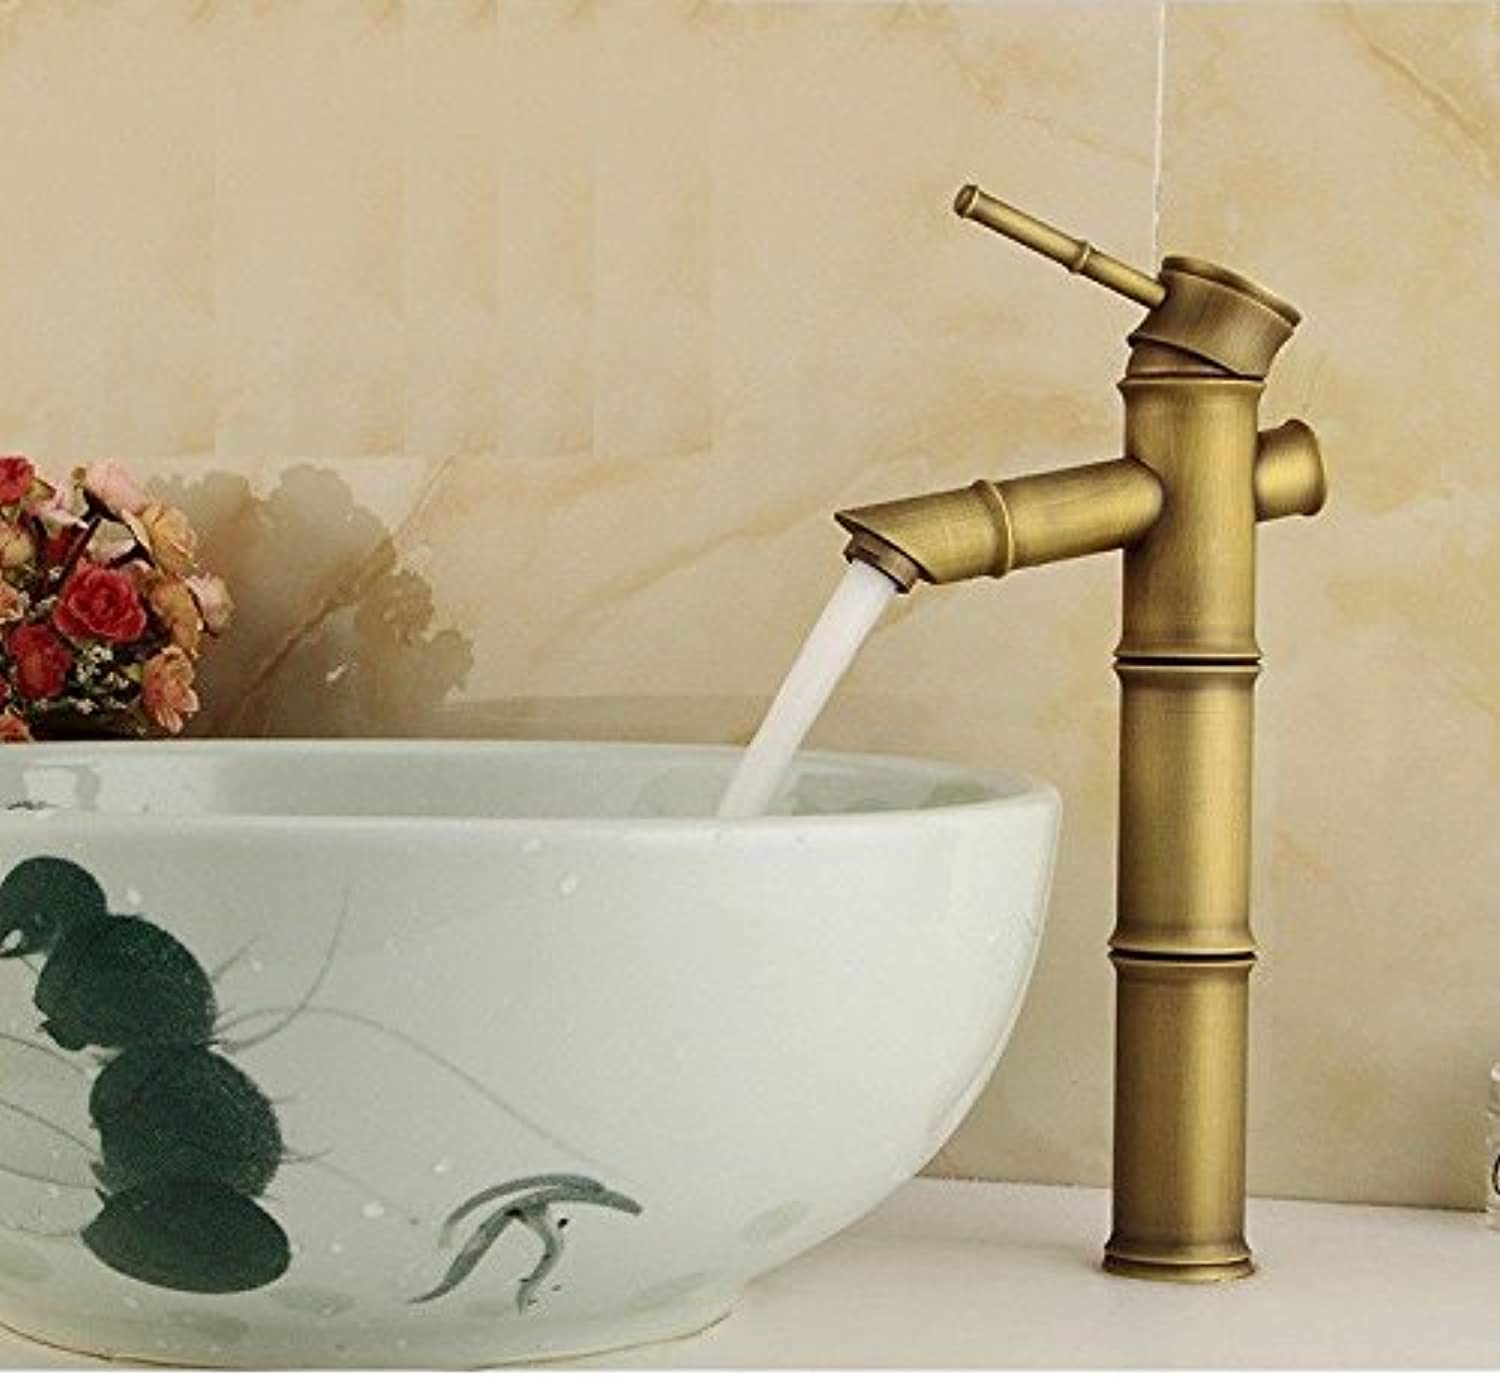 Lalaky Taps Faucet Kitchen Mixer Sink Waterfall Bathroom Mixer Basin Mixer Tap for Kitchen Bathroom and Washroom Antique Bamboo Brushed